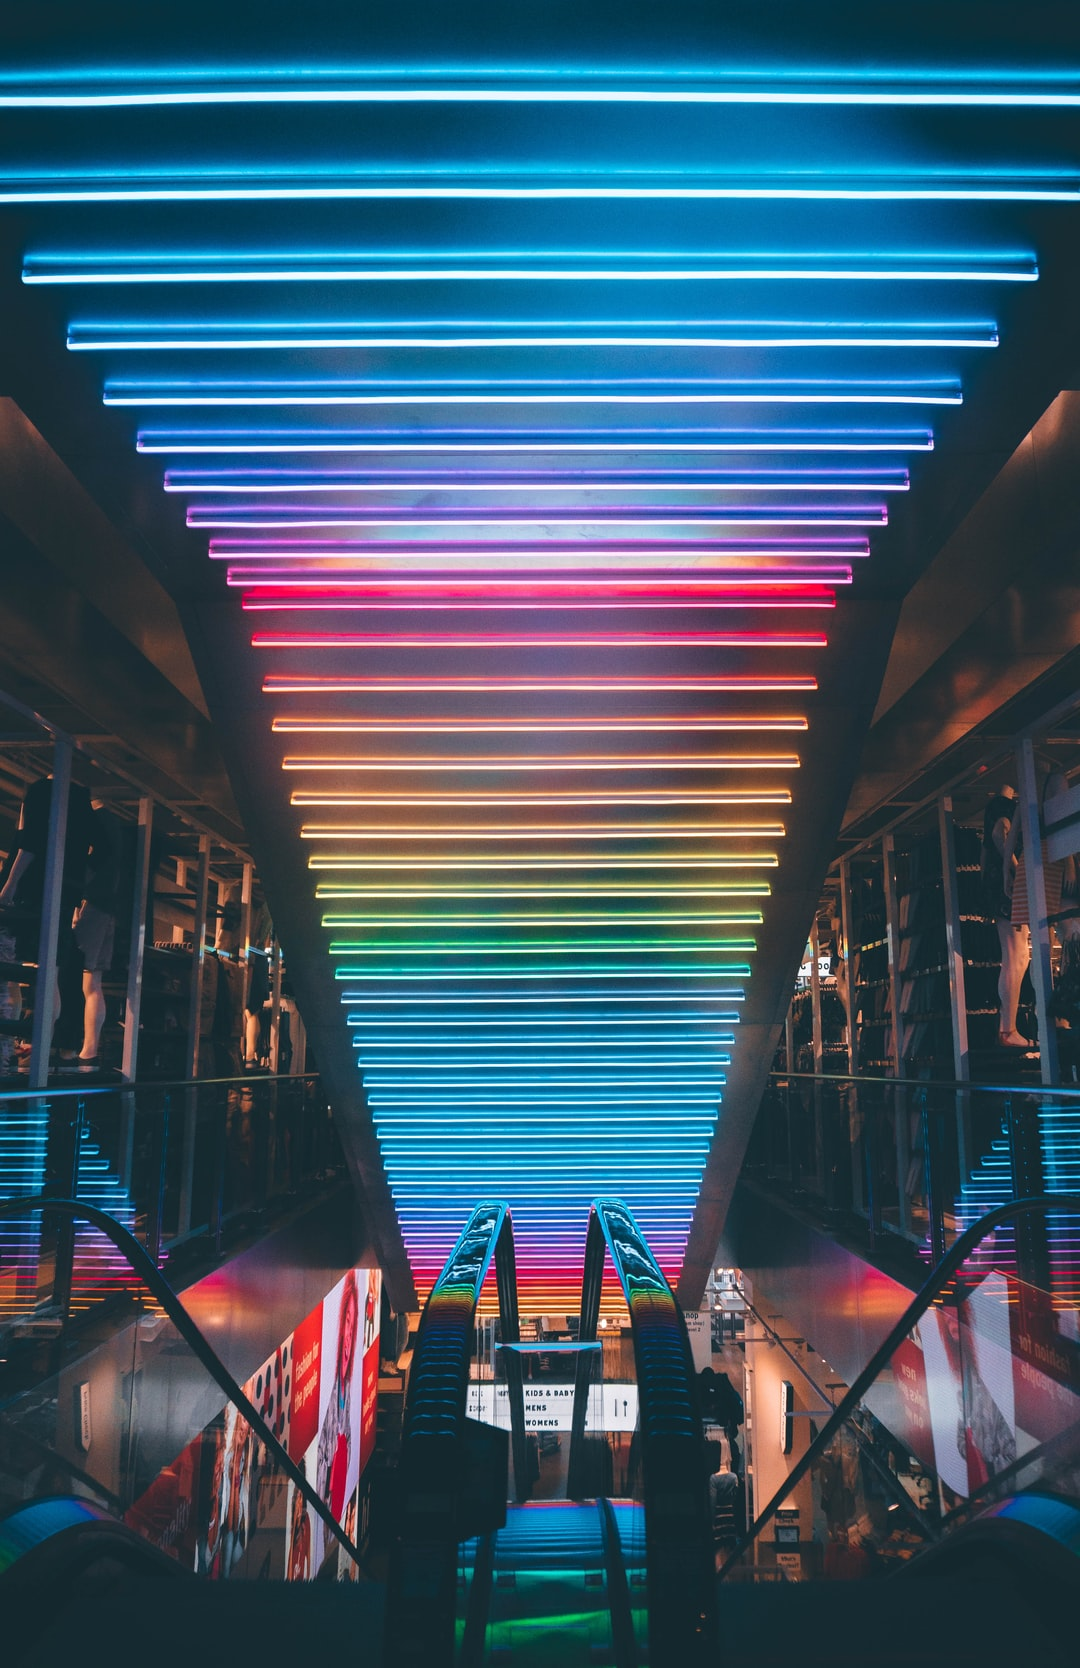 500+ Neon Light Pictures | Download Free Images on Unsplash